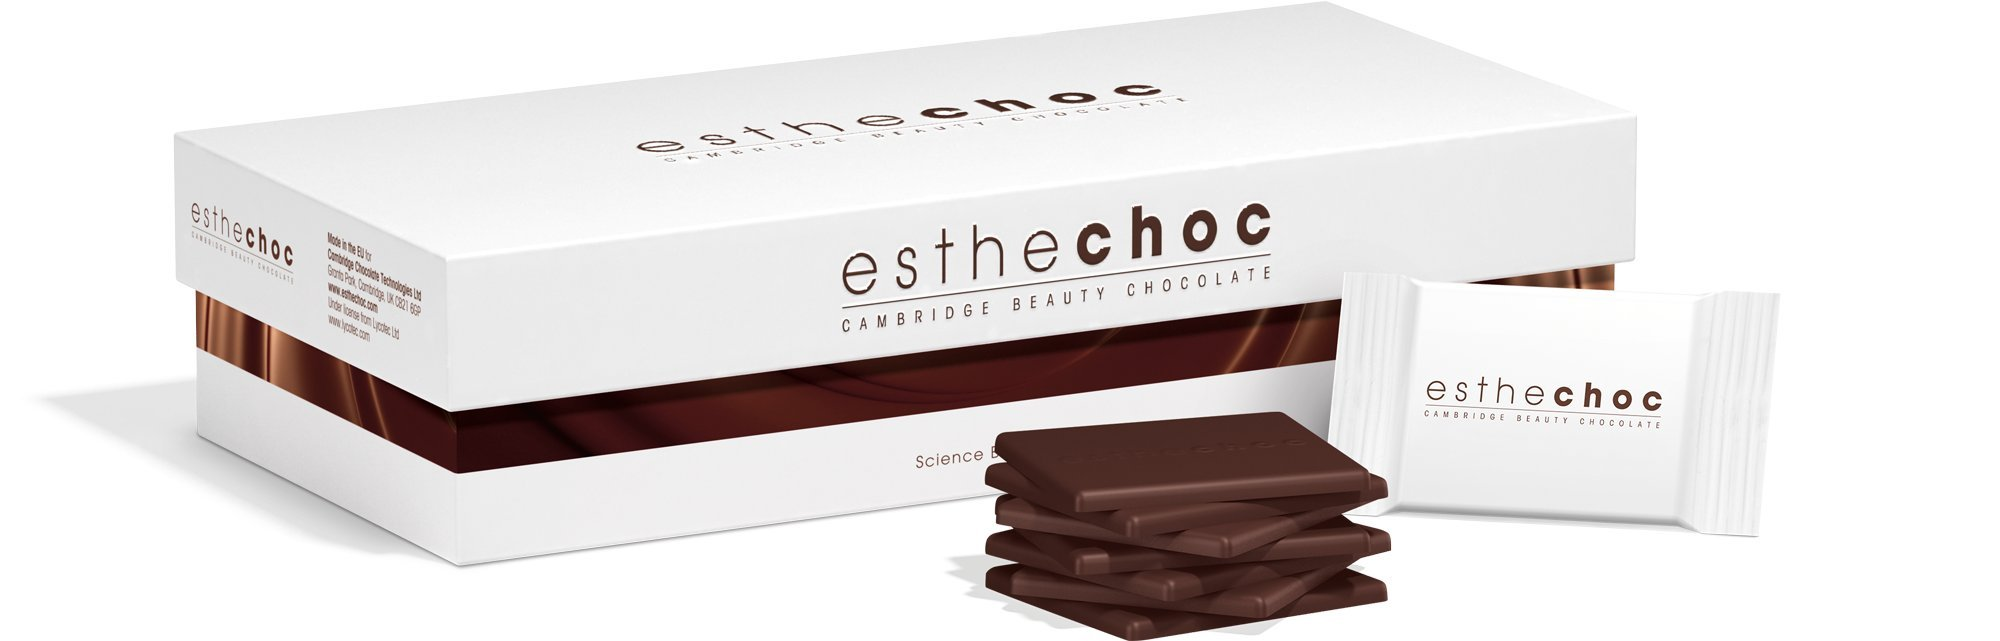 Esthechoc—Anti Aging Skin Care Beauty Chocolate Supplement—Packed with Polyphenols and Antioxidants including Astaxanthin